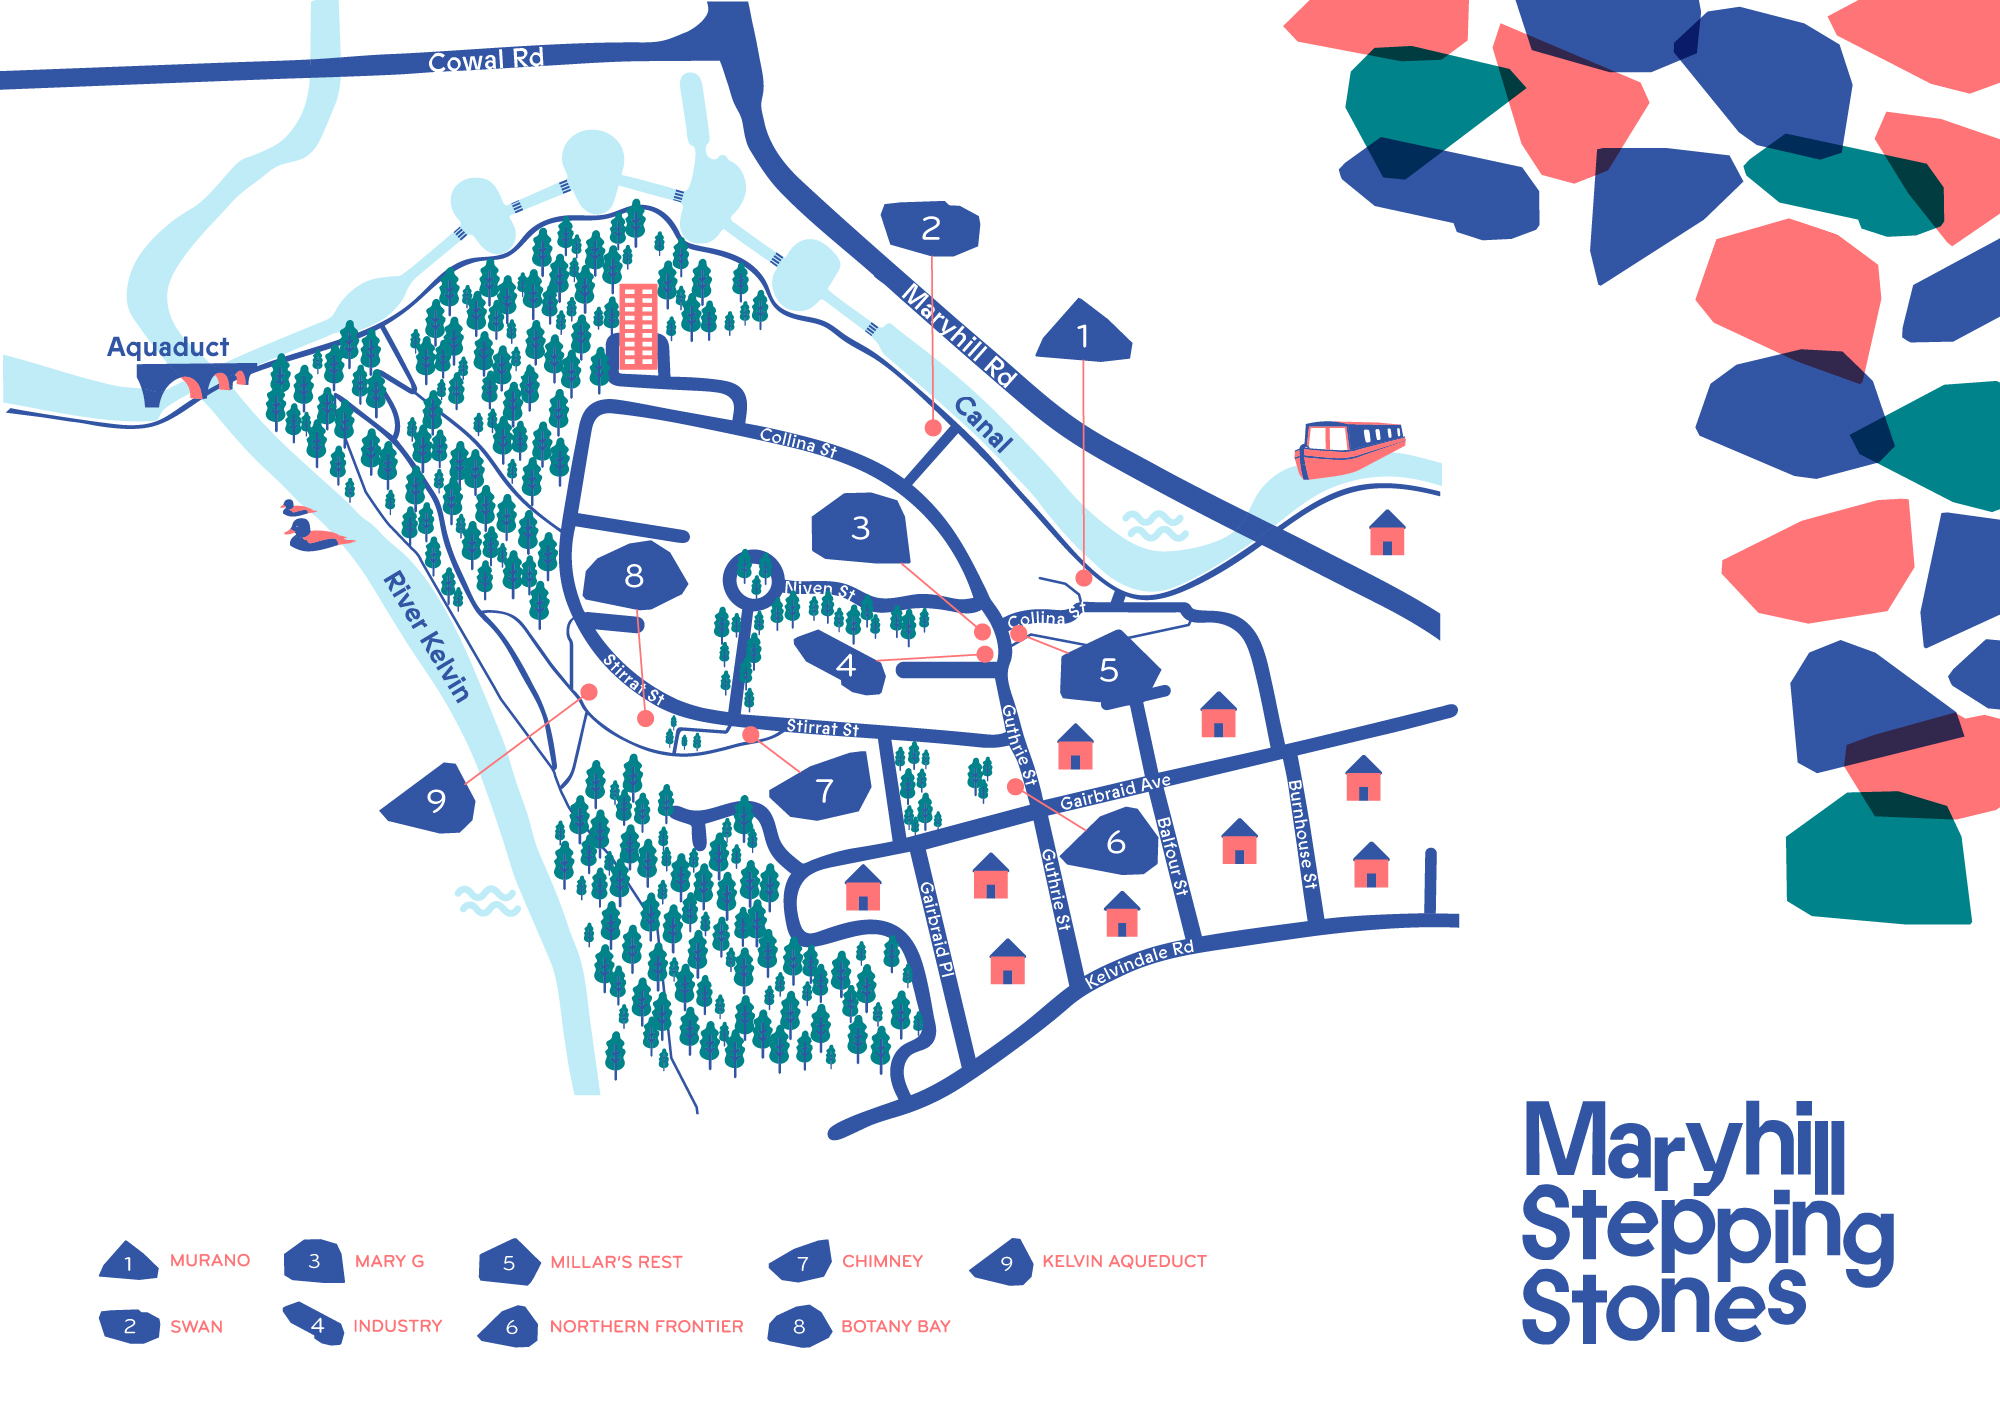 Image of the Maryhill Stepping Stones Map